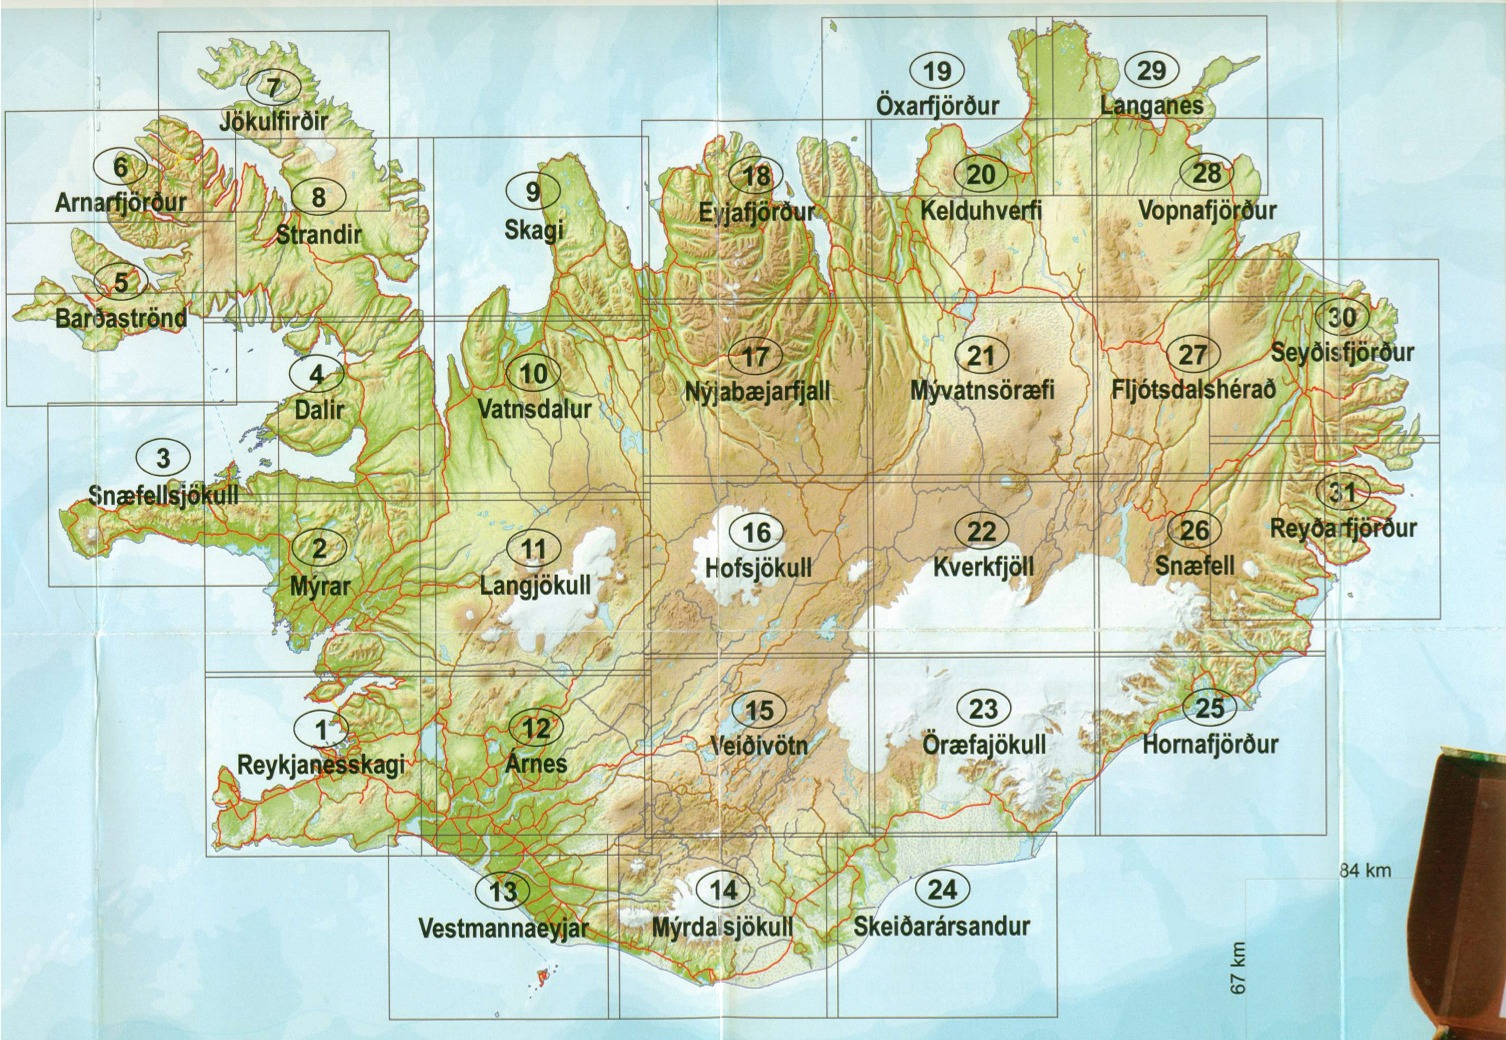 Iceland Buy Maps and travel guides online – Map Of Iceland Tourist Attractions